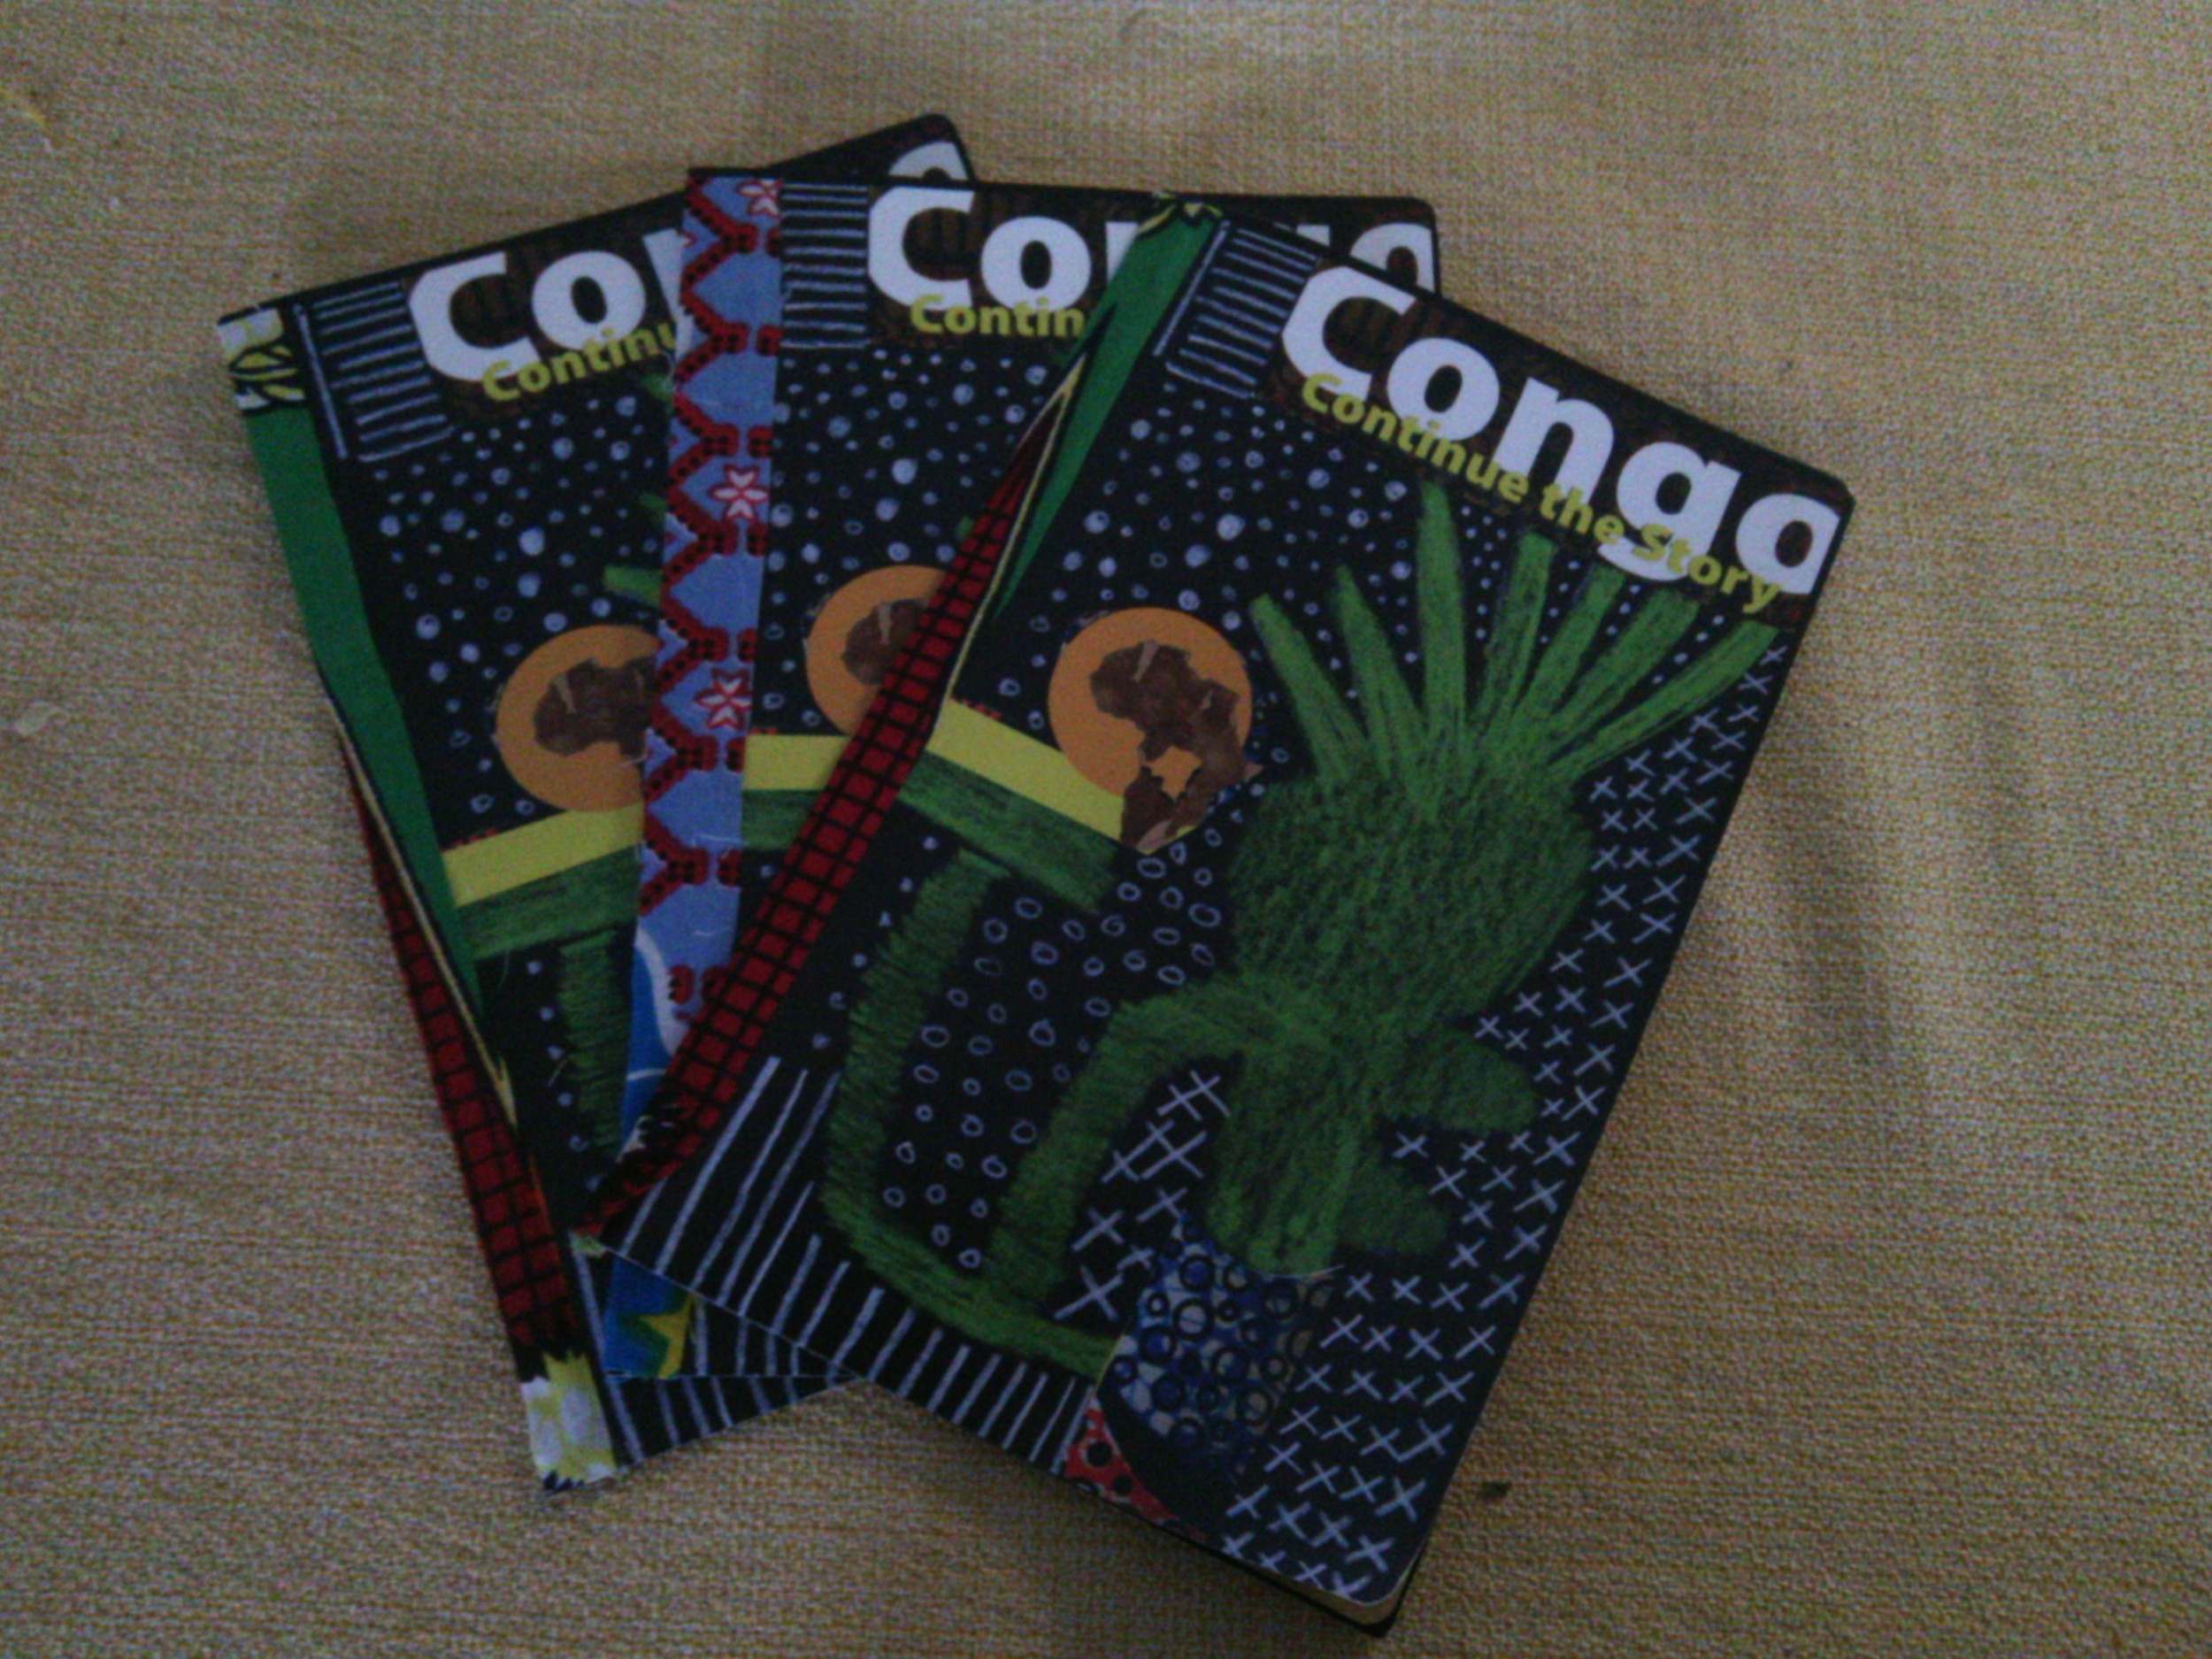 The front of the books are decorated with Congolese cloth and hand sewn.